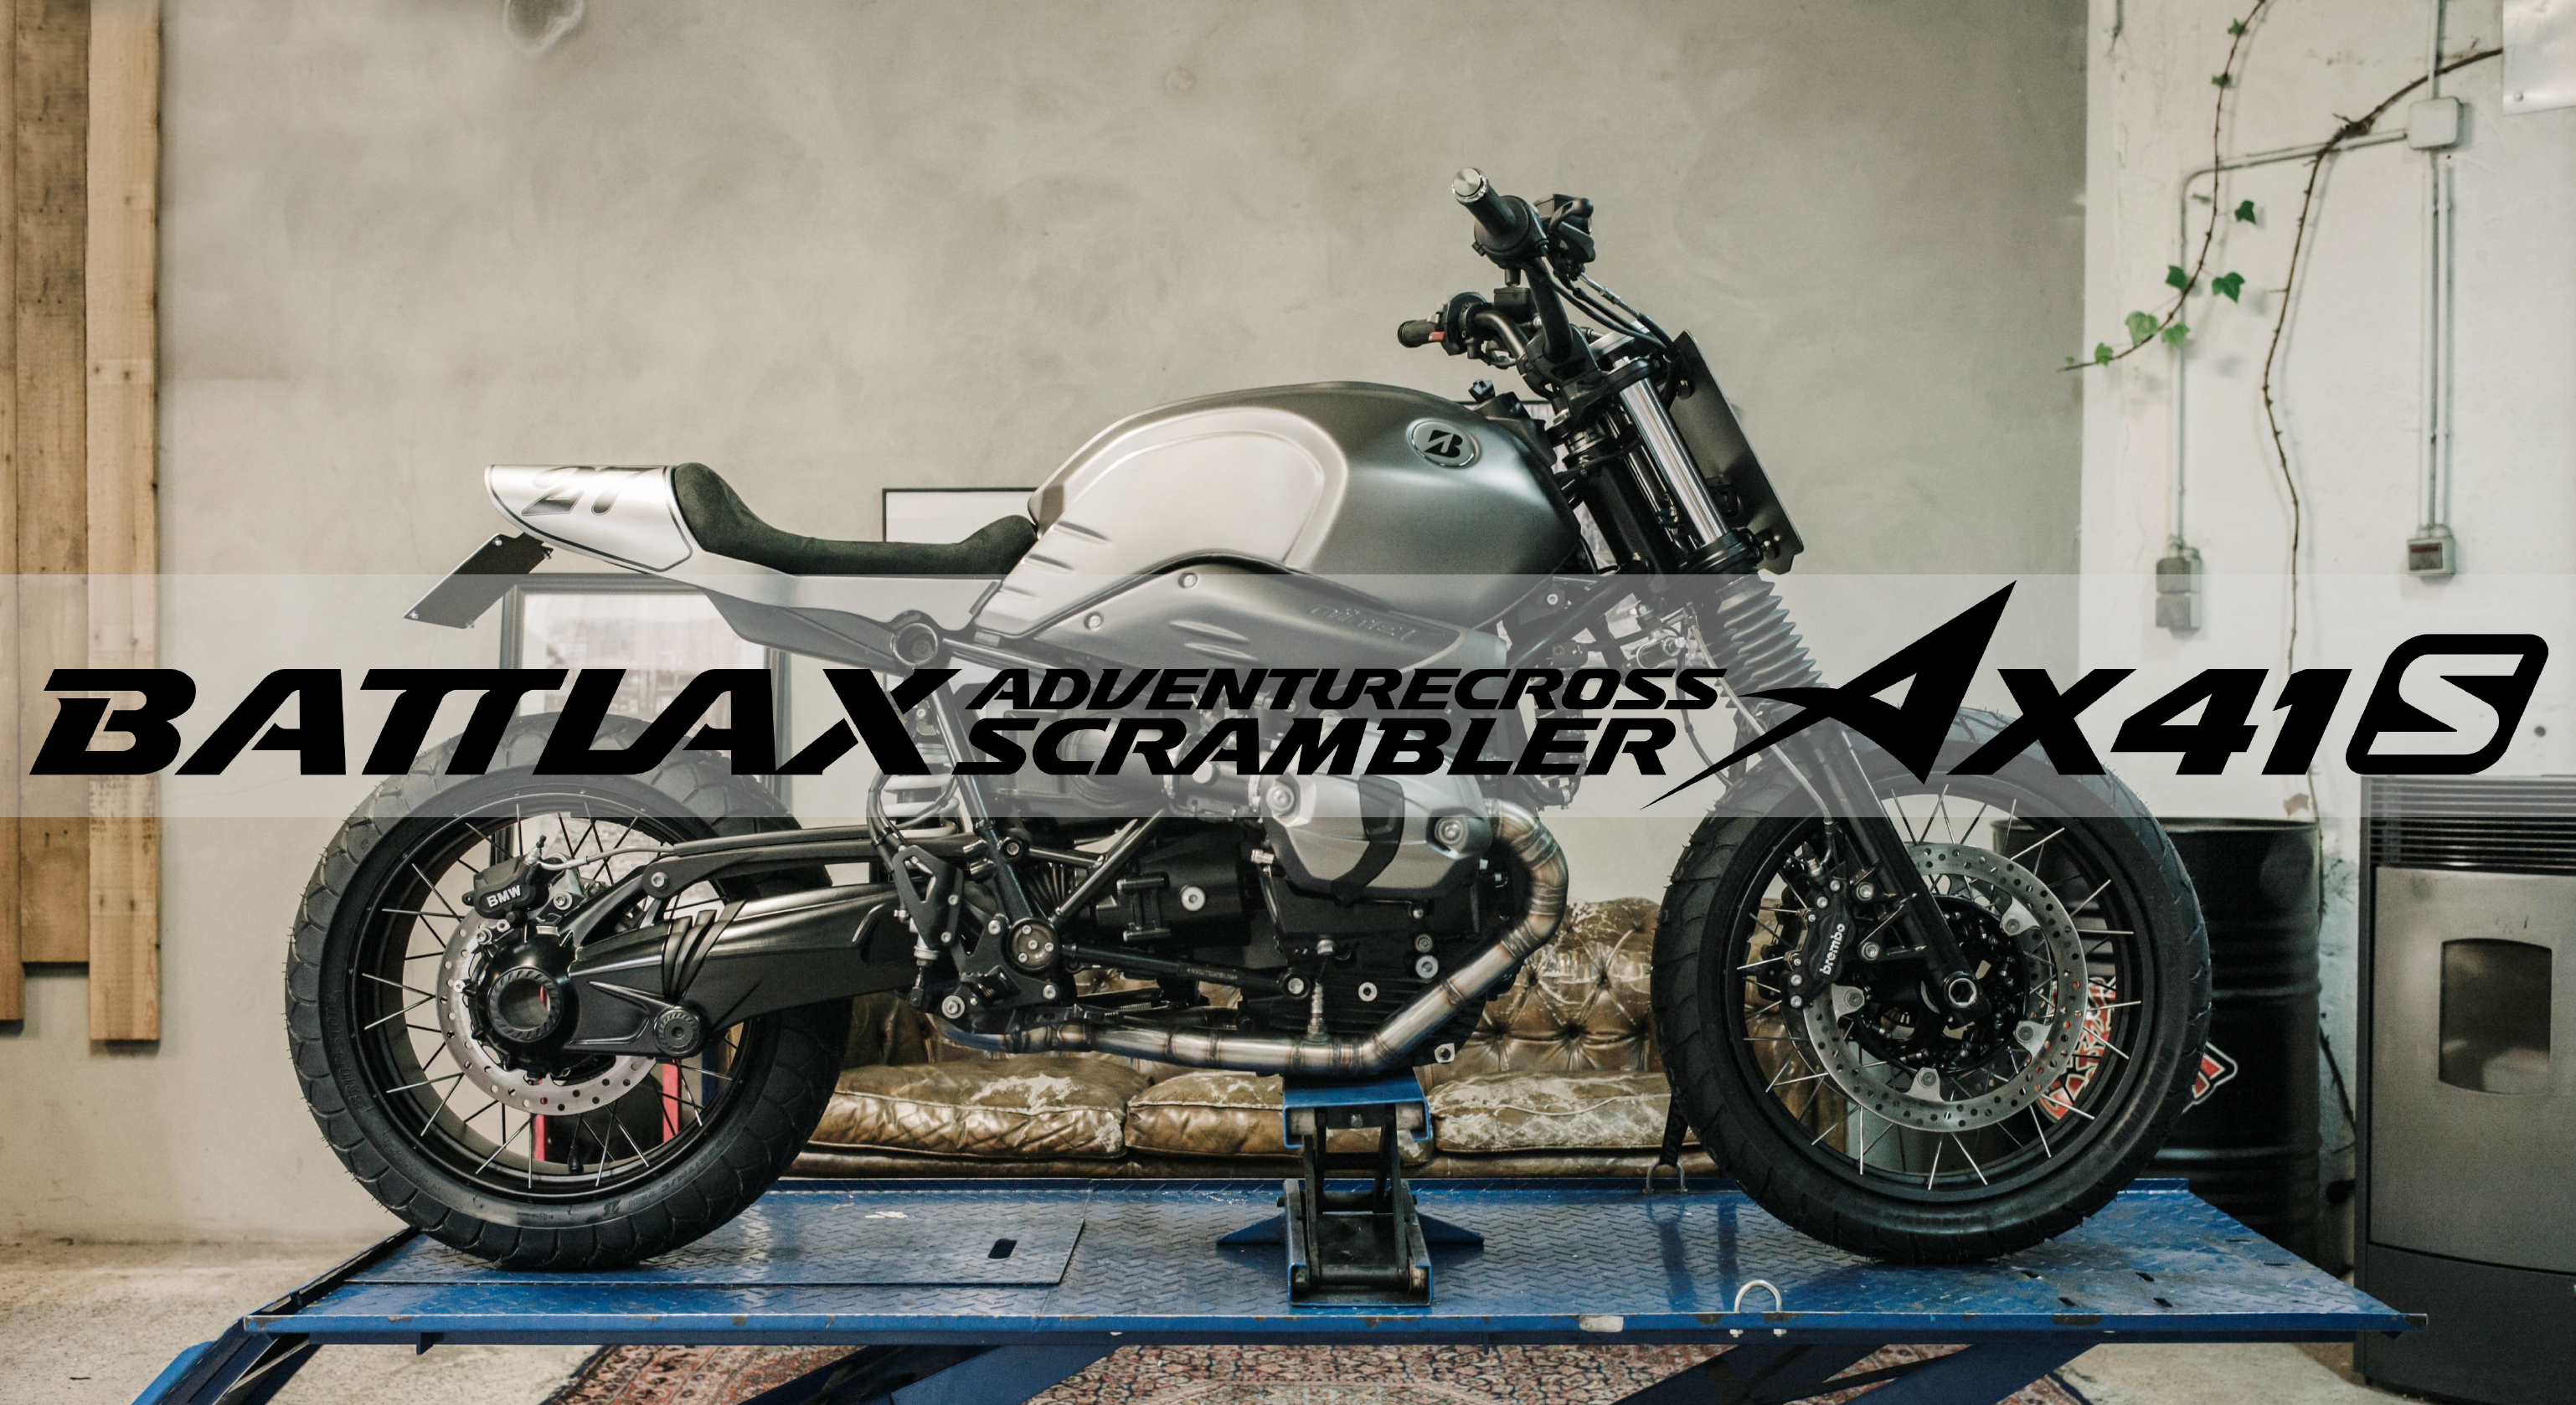 Le Battlax Adventurecross Scrambler AX41S